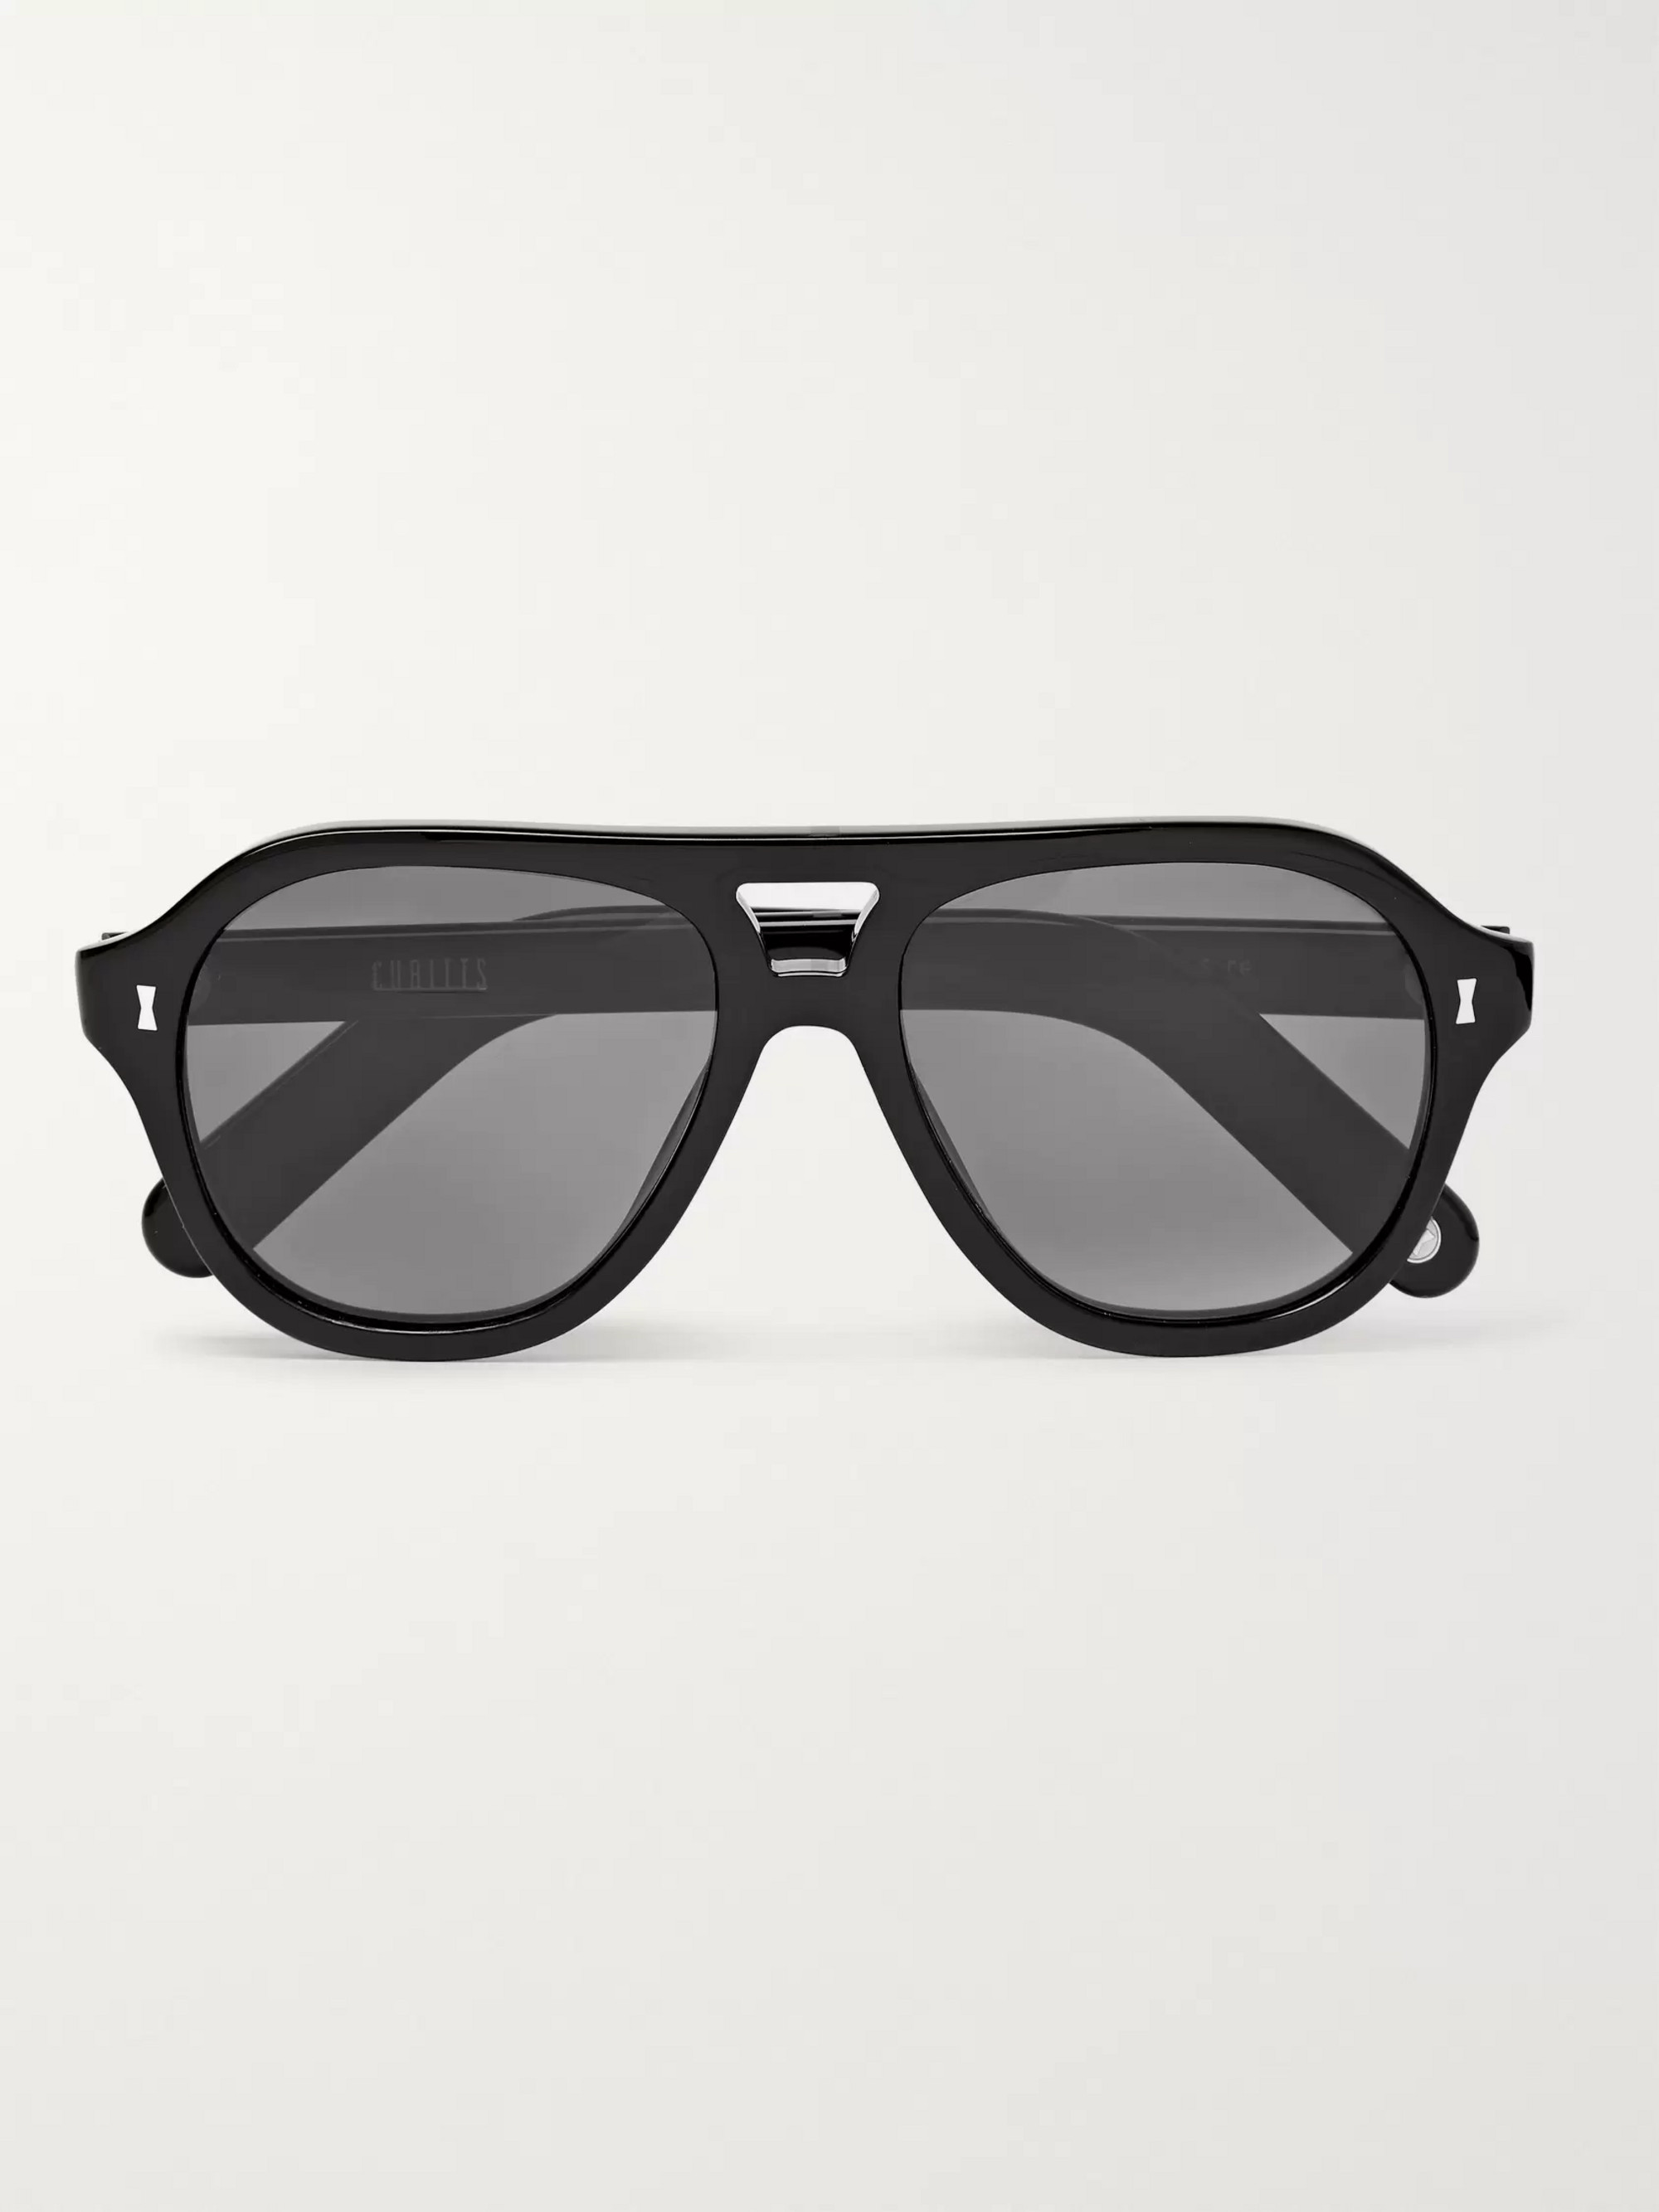 Cubitts Penton Aviator-Style Acetate Sunglasses